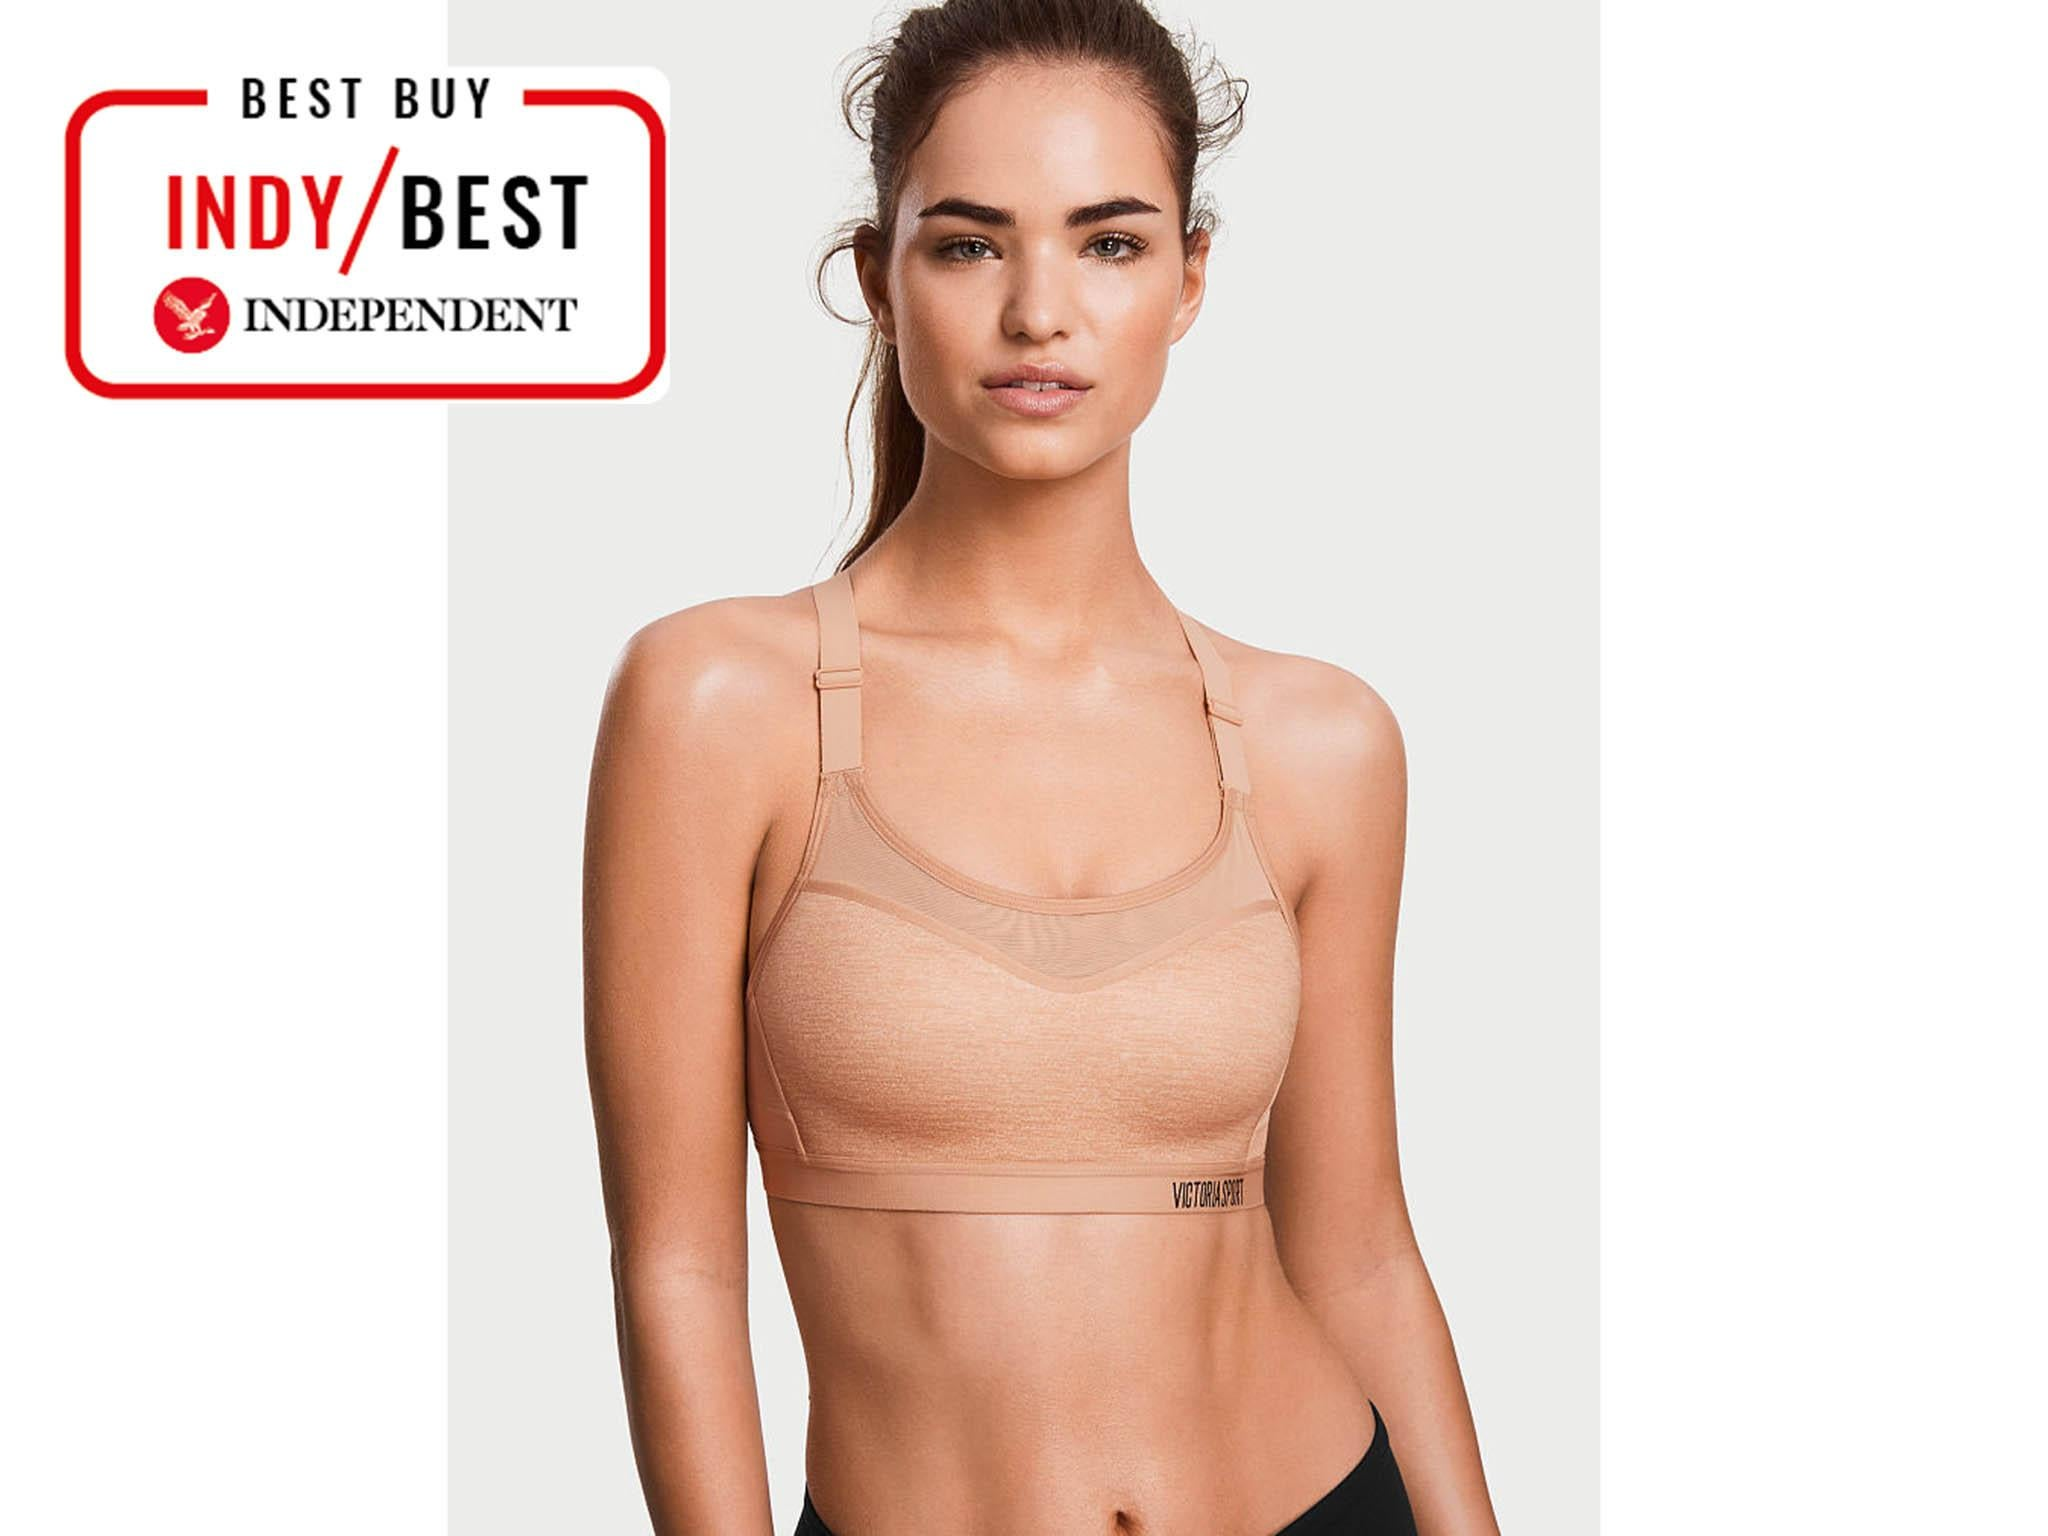 f525f850dc57c 9 best sports bras